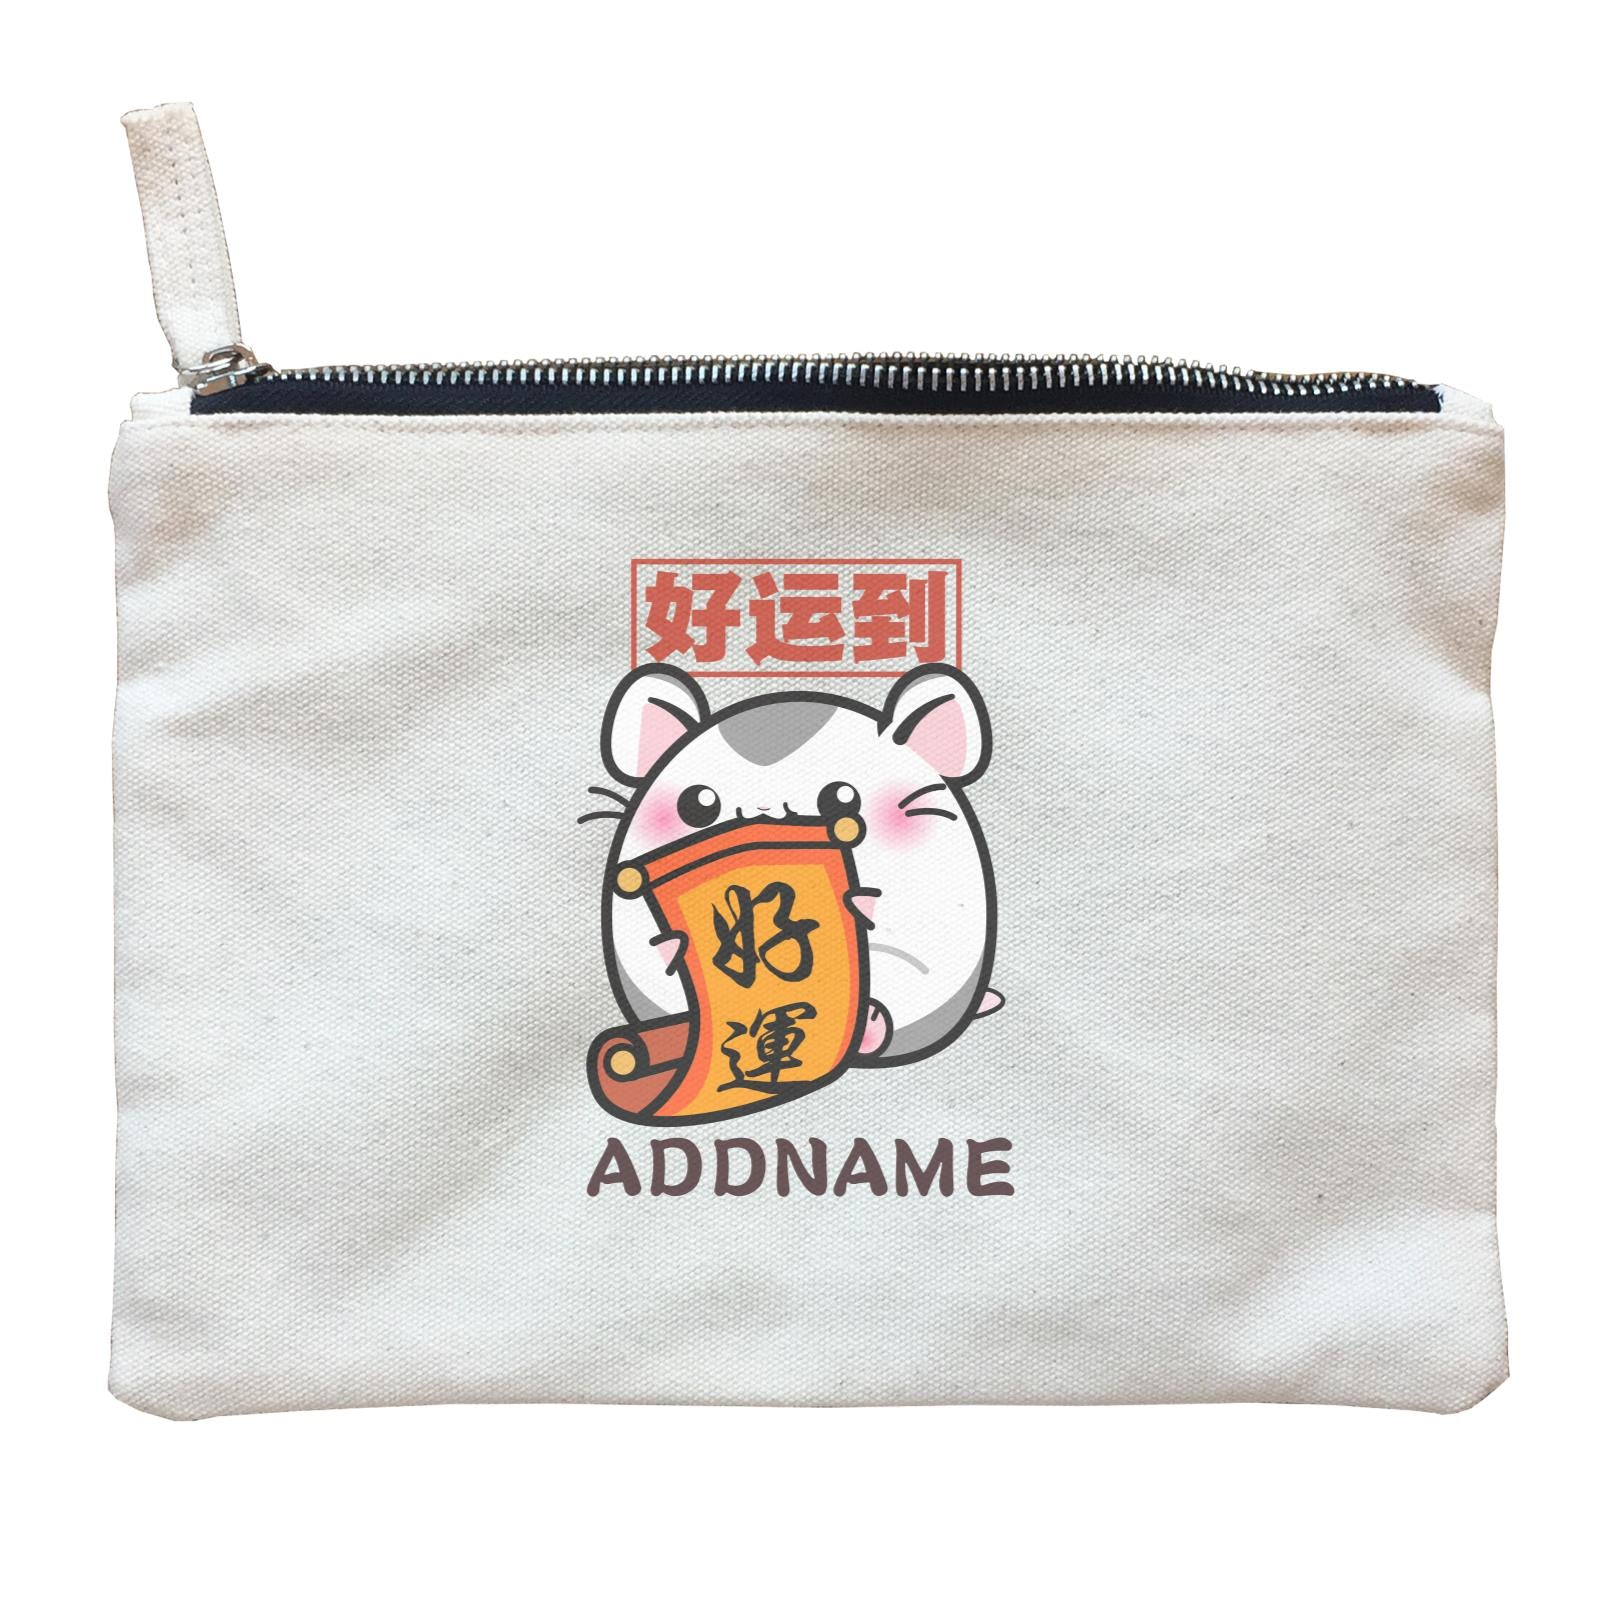 Prosperous Mouse Series Lucky Jim Fortune Comes to You Accessories Zipper Pouch